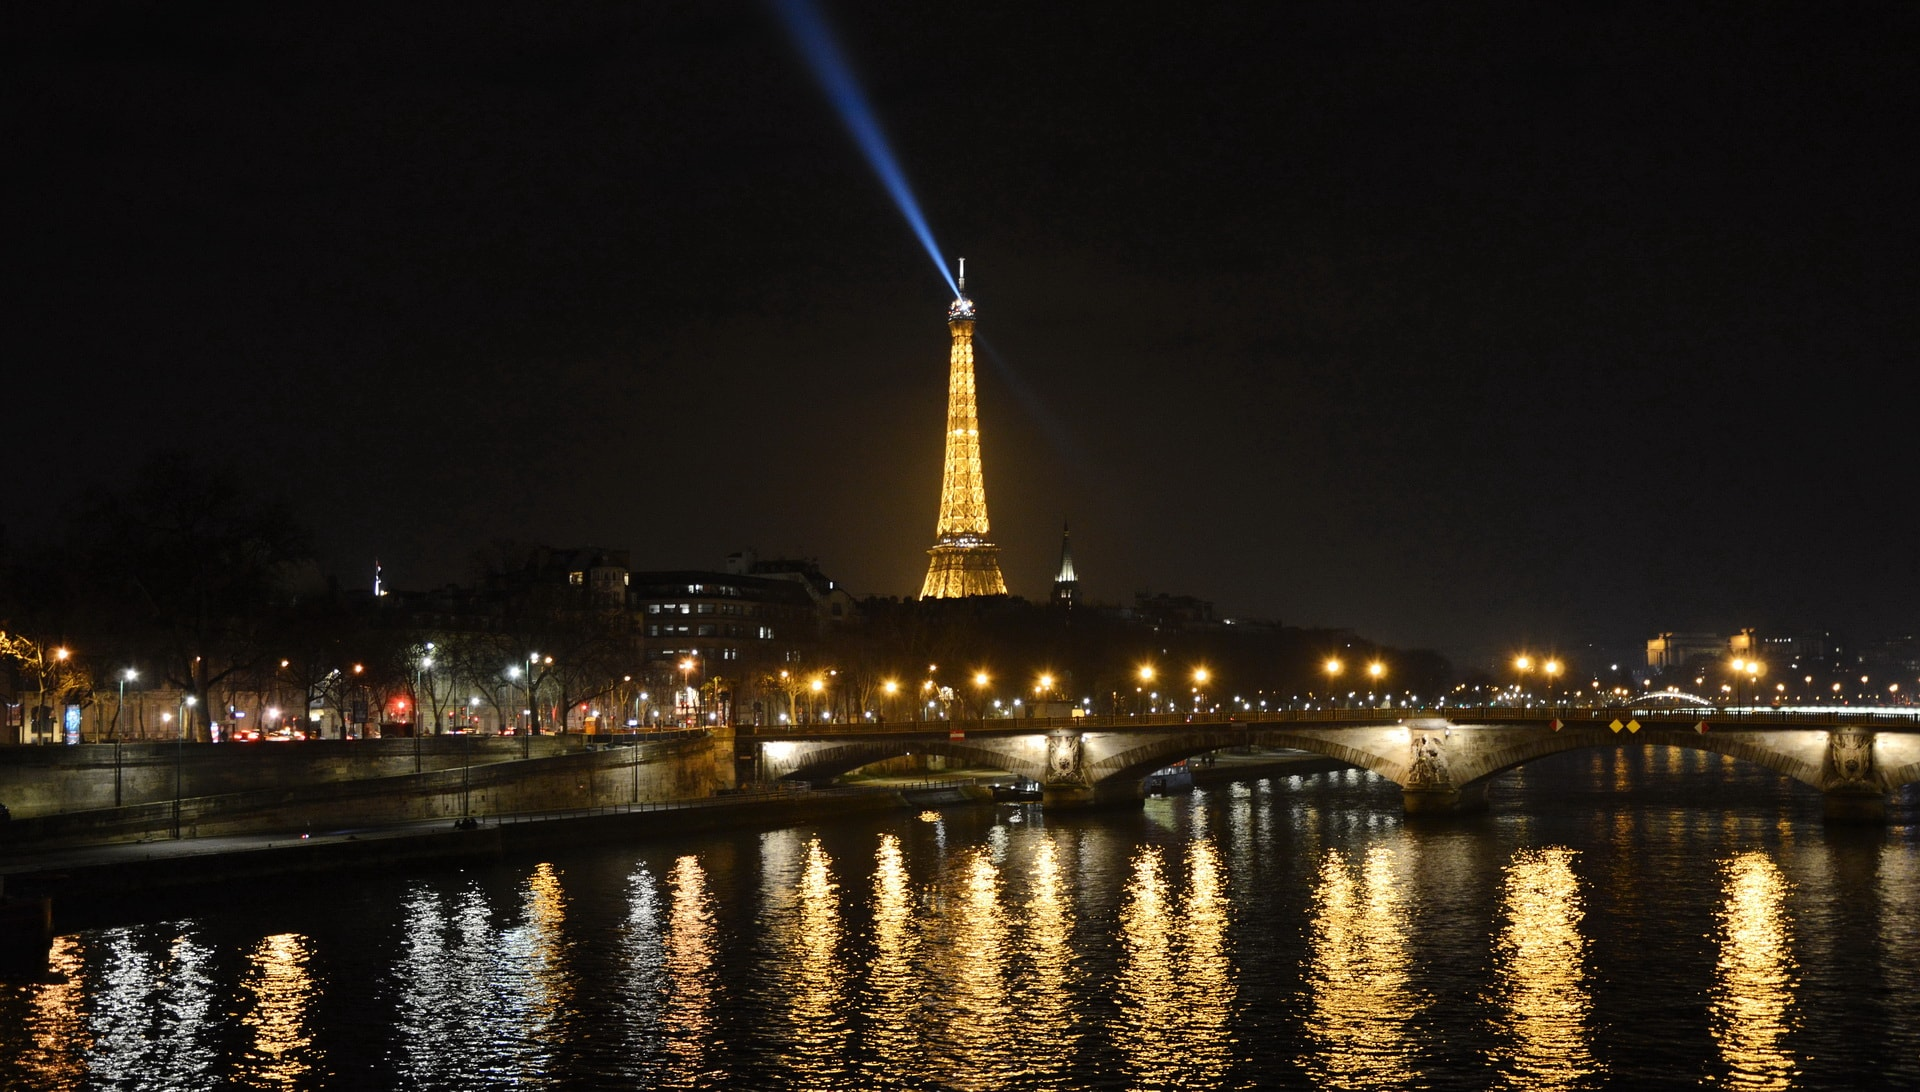 The Eiffel Tower at midnight seen from Pont Alexandre III